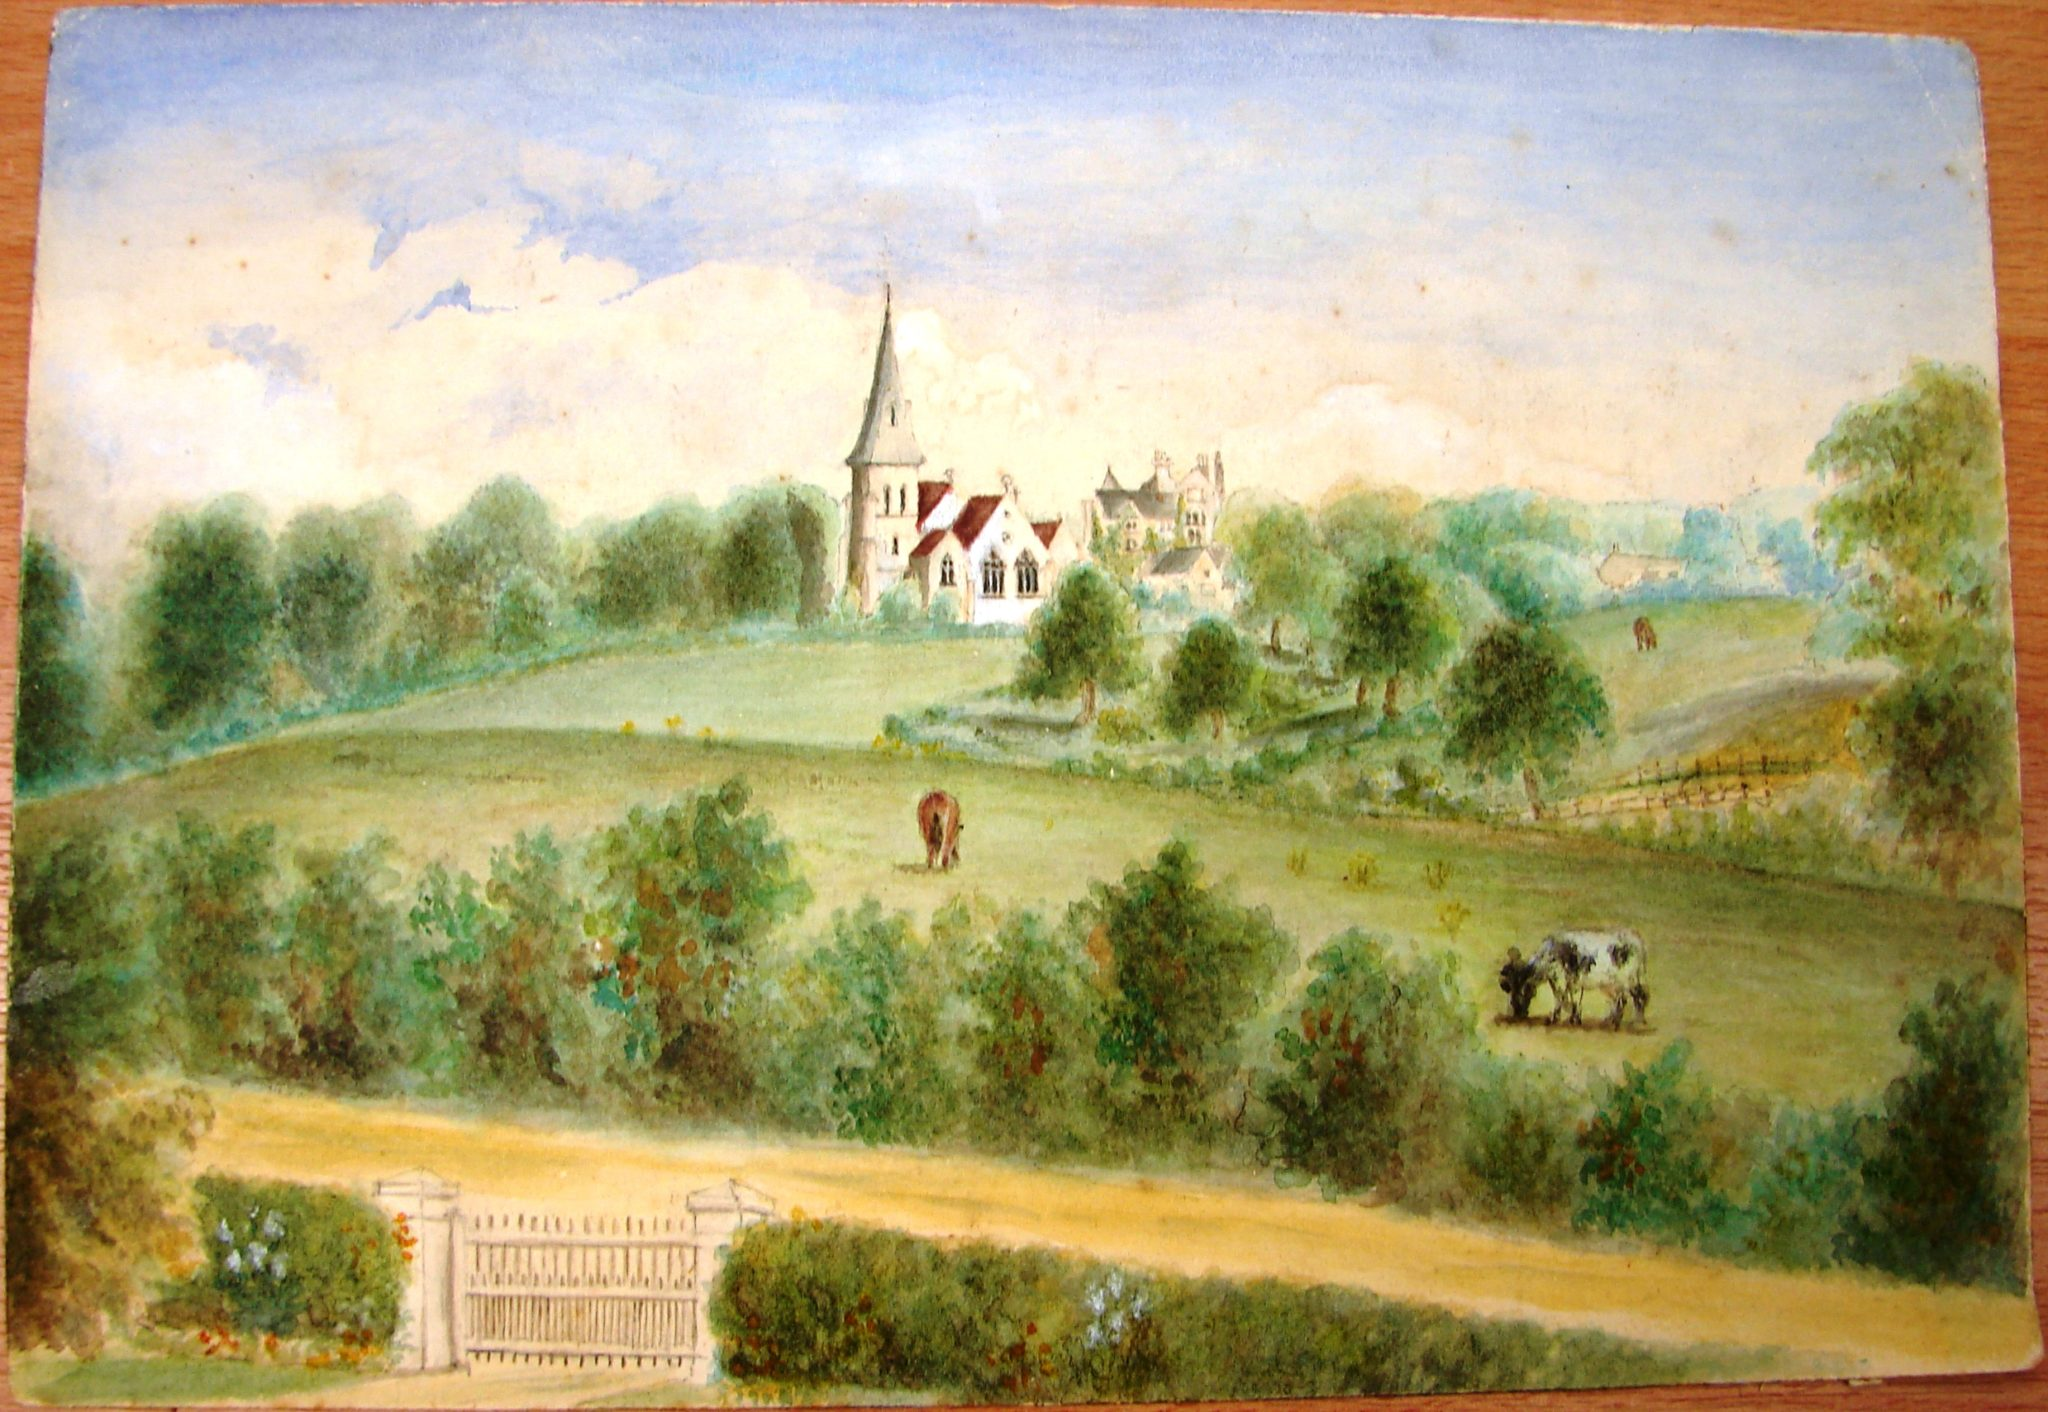 View of Highfield Church from the south east - unknown date This painting shows Highfield as the rural hamlet it once was. The large, chimneyed building visible to the rear of the church is probably the original vicarage built in 1852 (this building can now be found on Cranford Way).